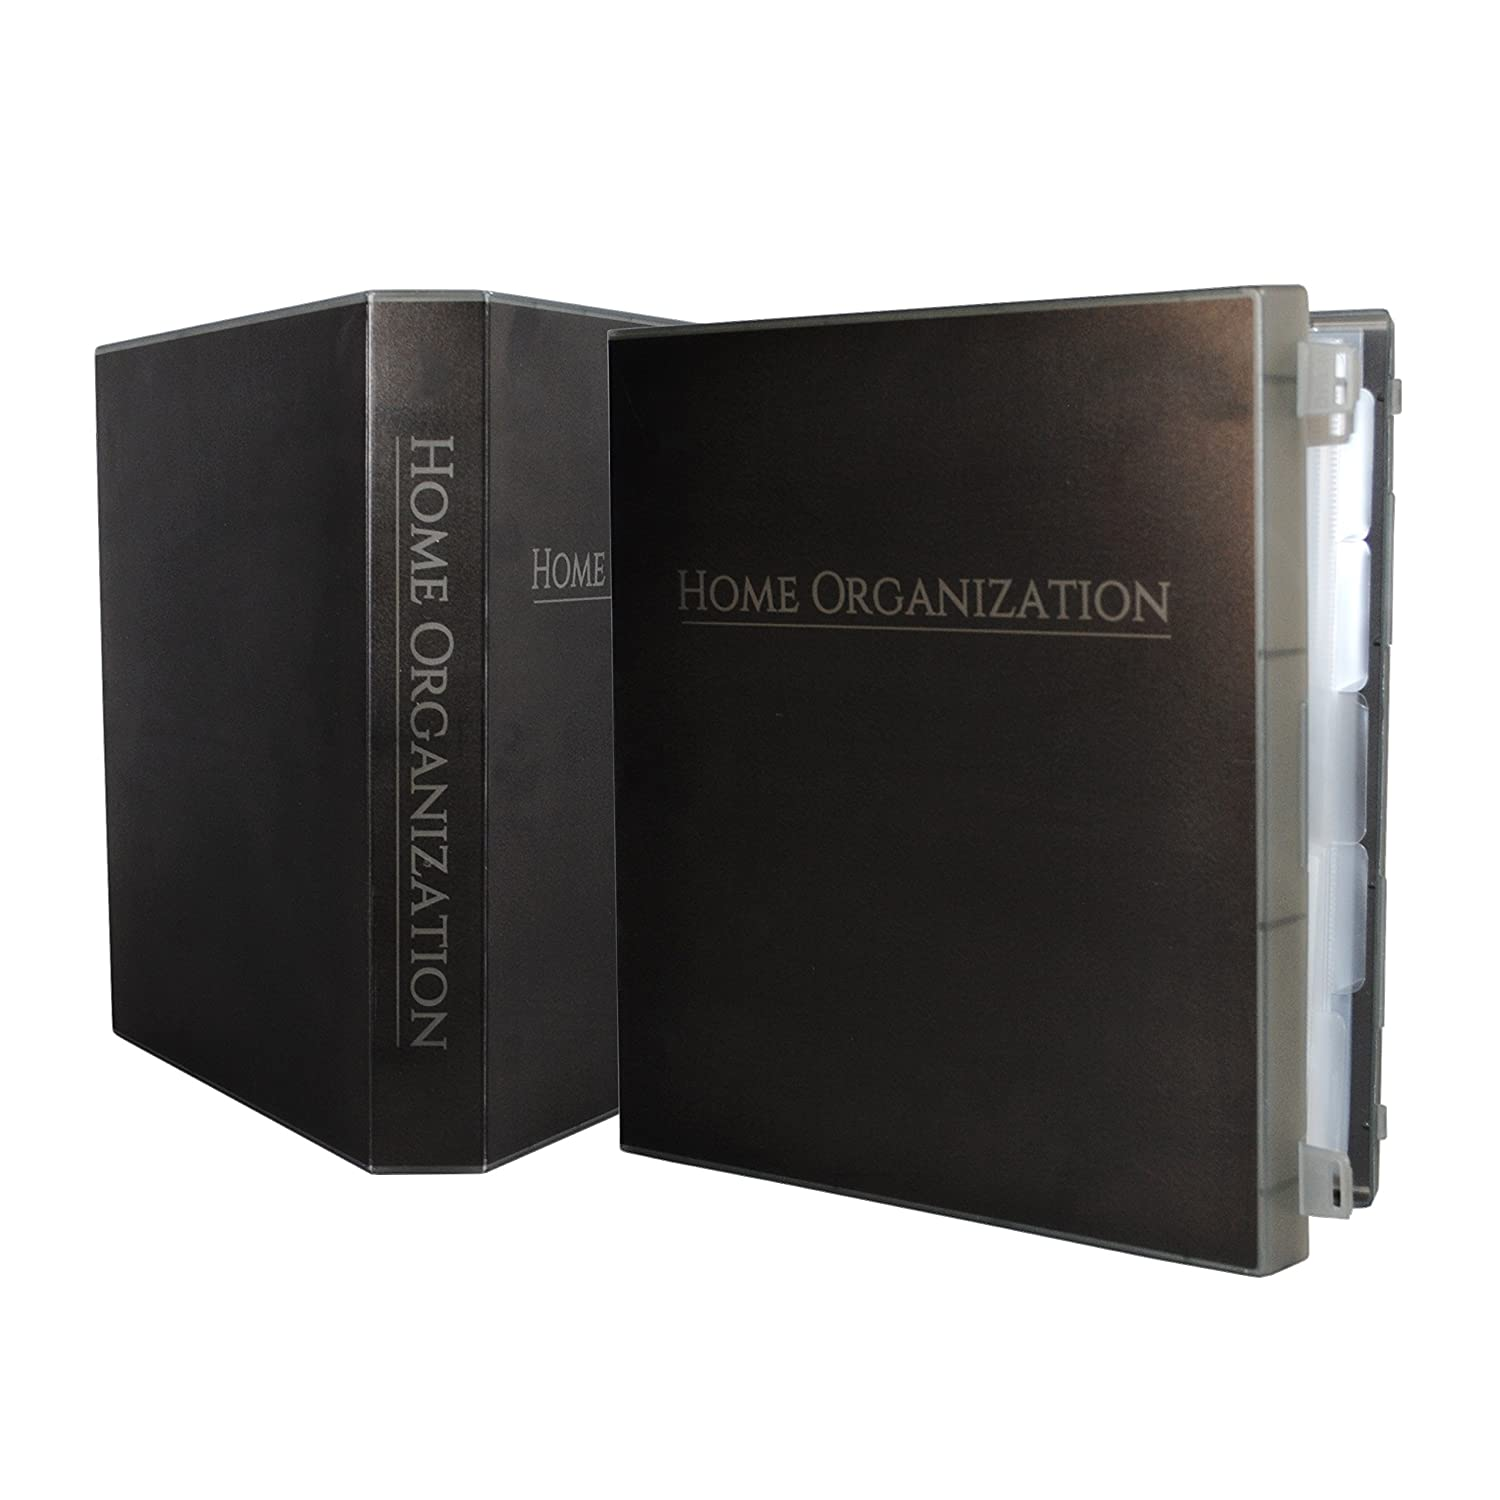 UniKeep Home Organization Binder/Storage Box with Guides and Checklists to Keep All Your Key Information in One Place